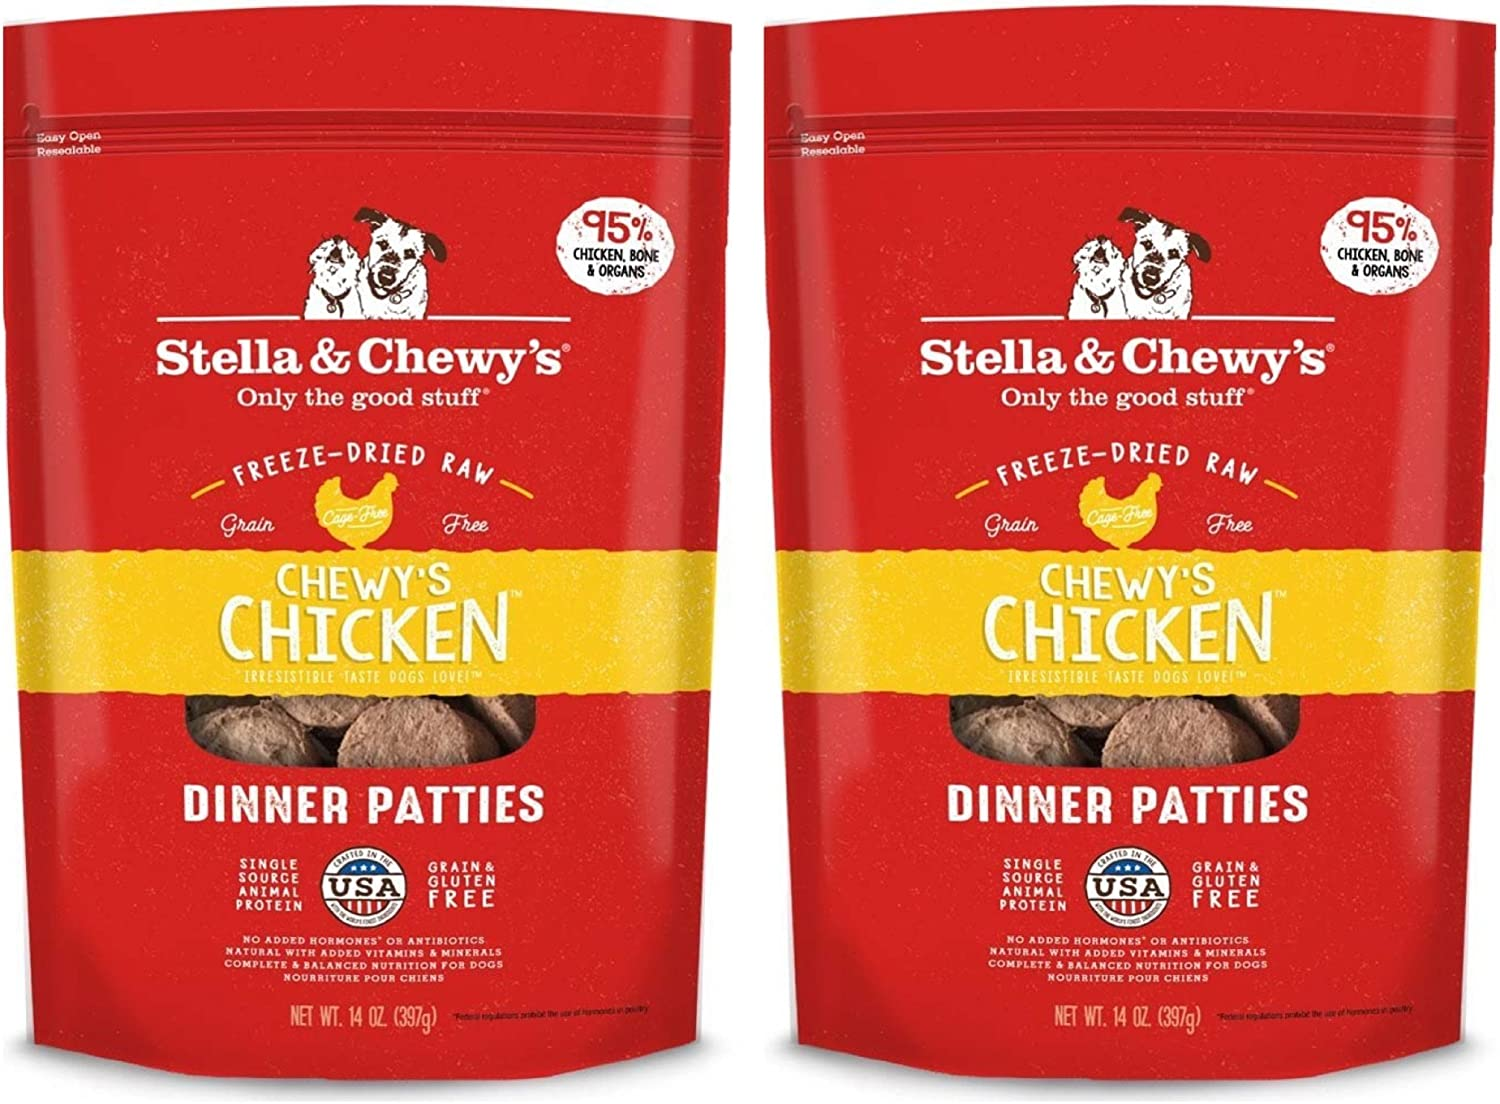 Stella & Chewys Chicken Dinner Patties - 2 Pack